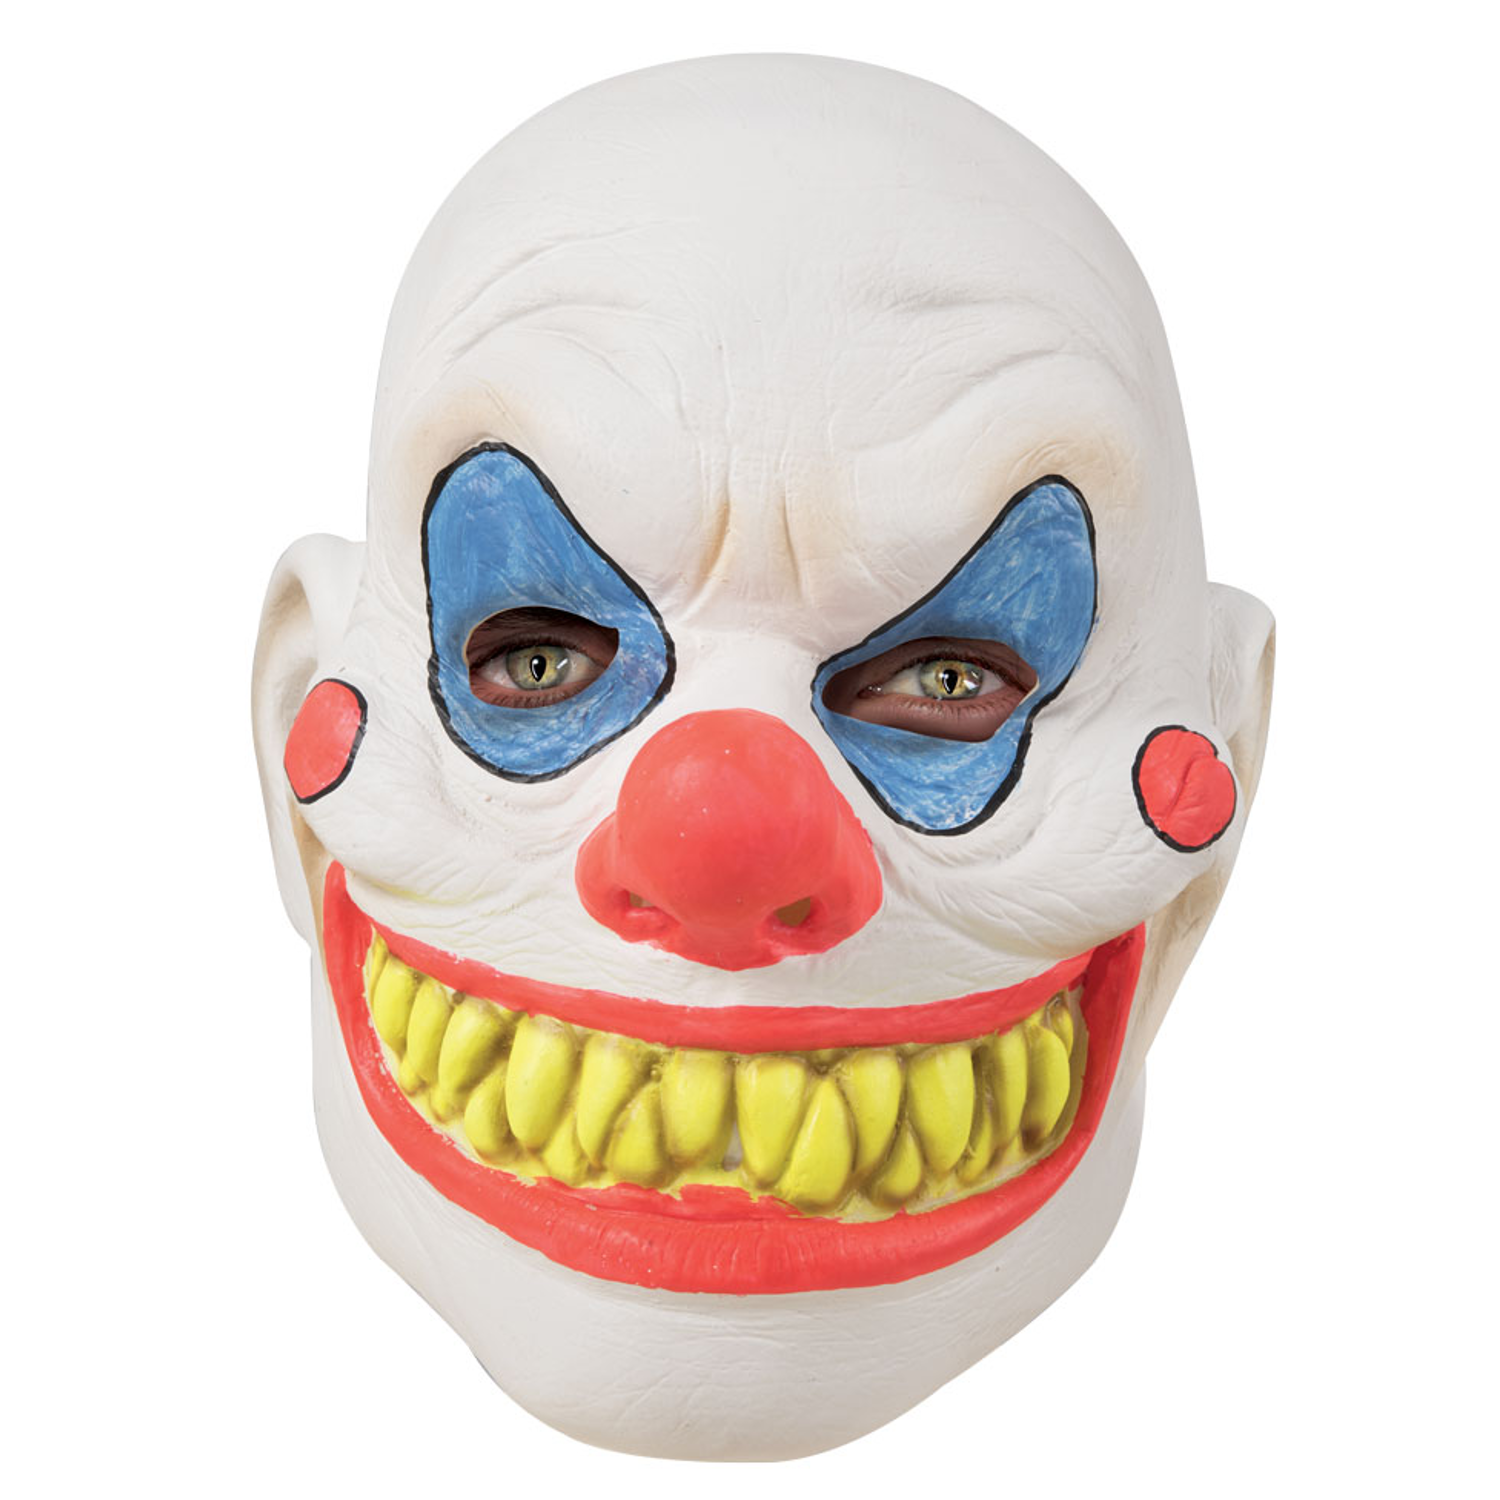 Masque Adulte Latex – Clown Cruel